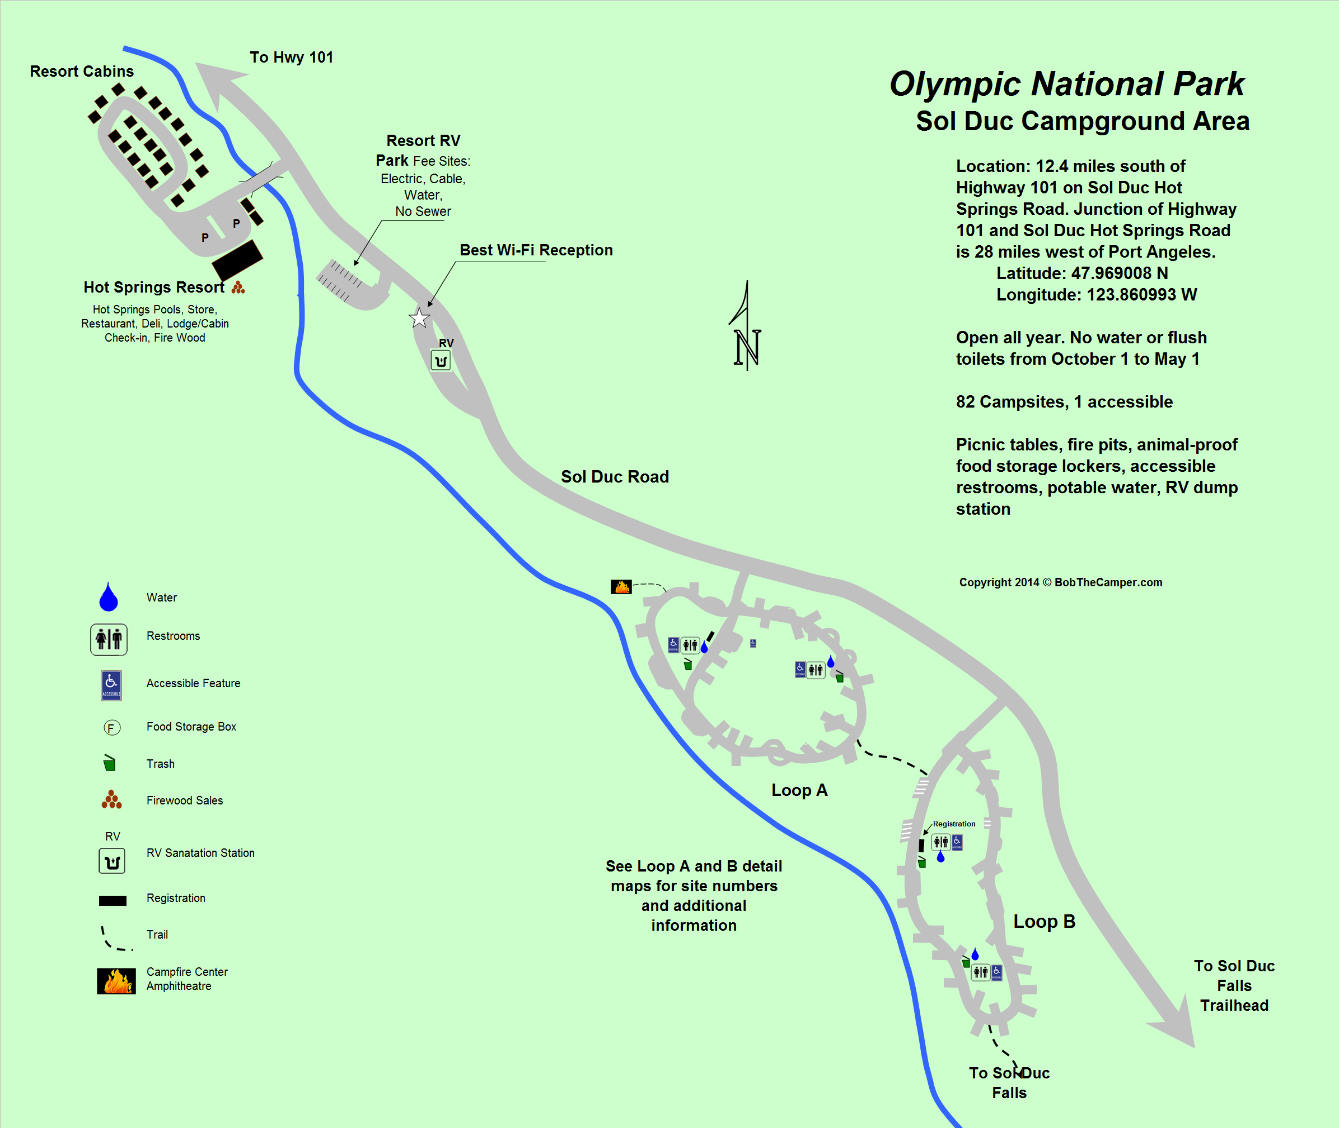 Sol Duc Campground Area Olympic National Park